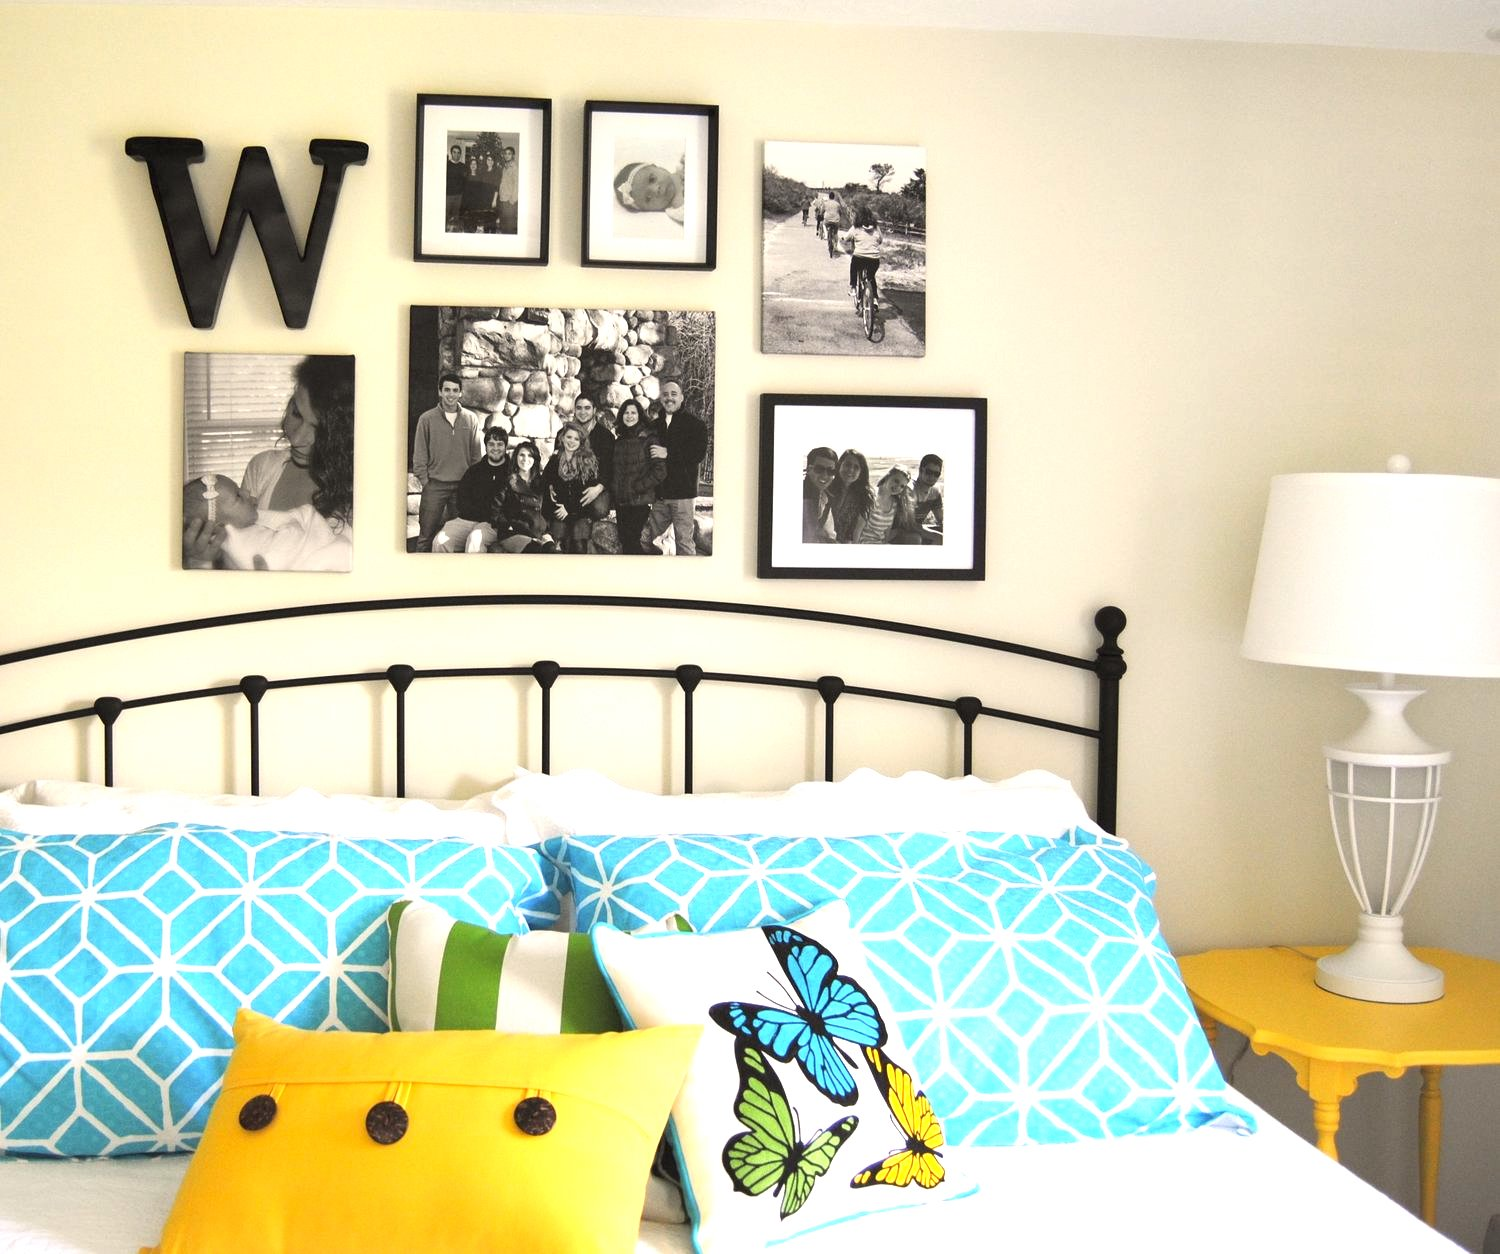 Yellow accent pillows and painted side table in Benjamin Moore yellow highlighter enliven this turquoise guest room